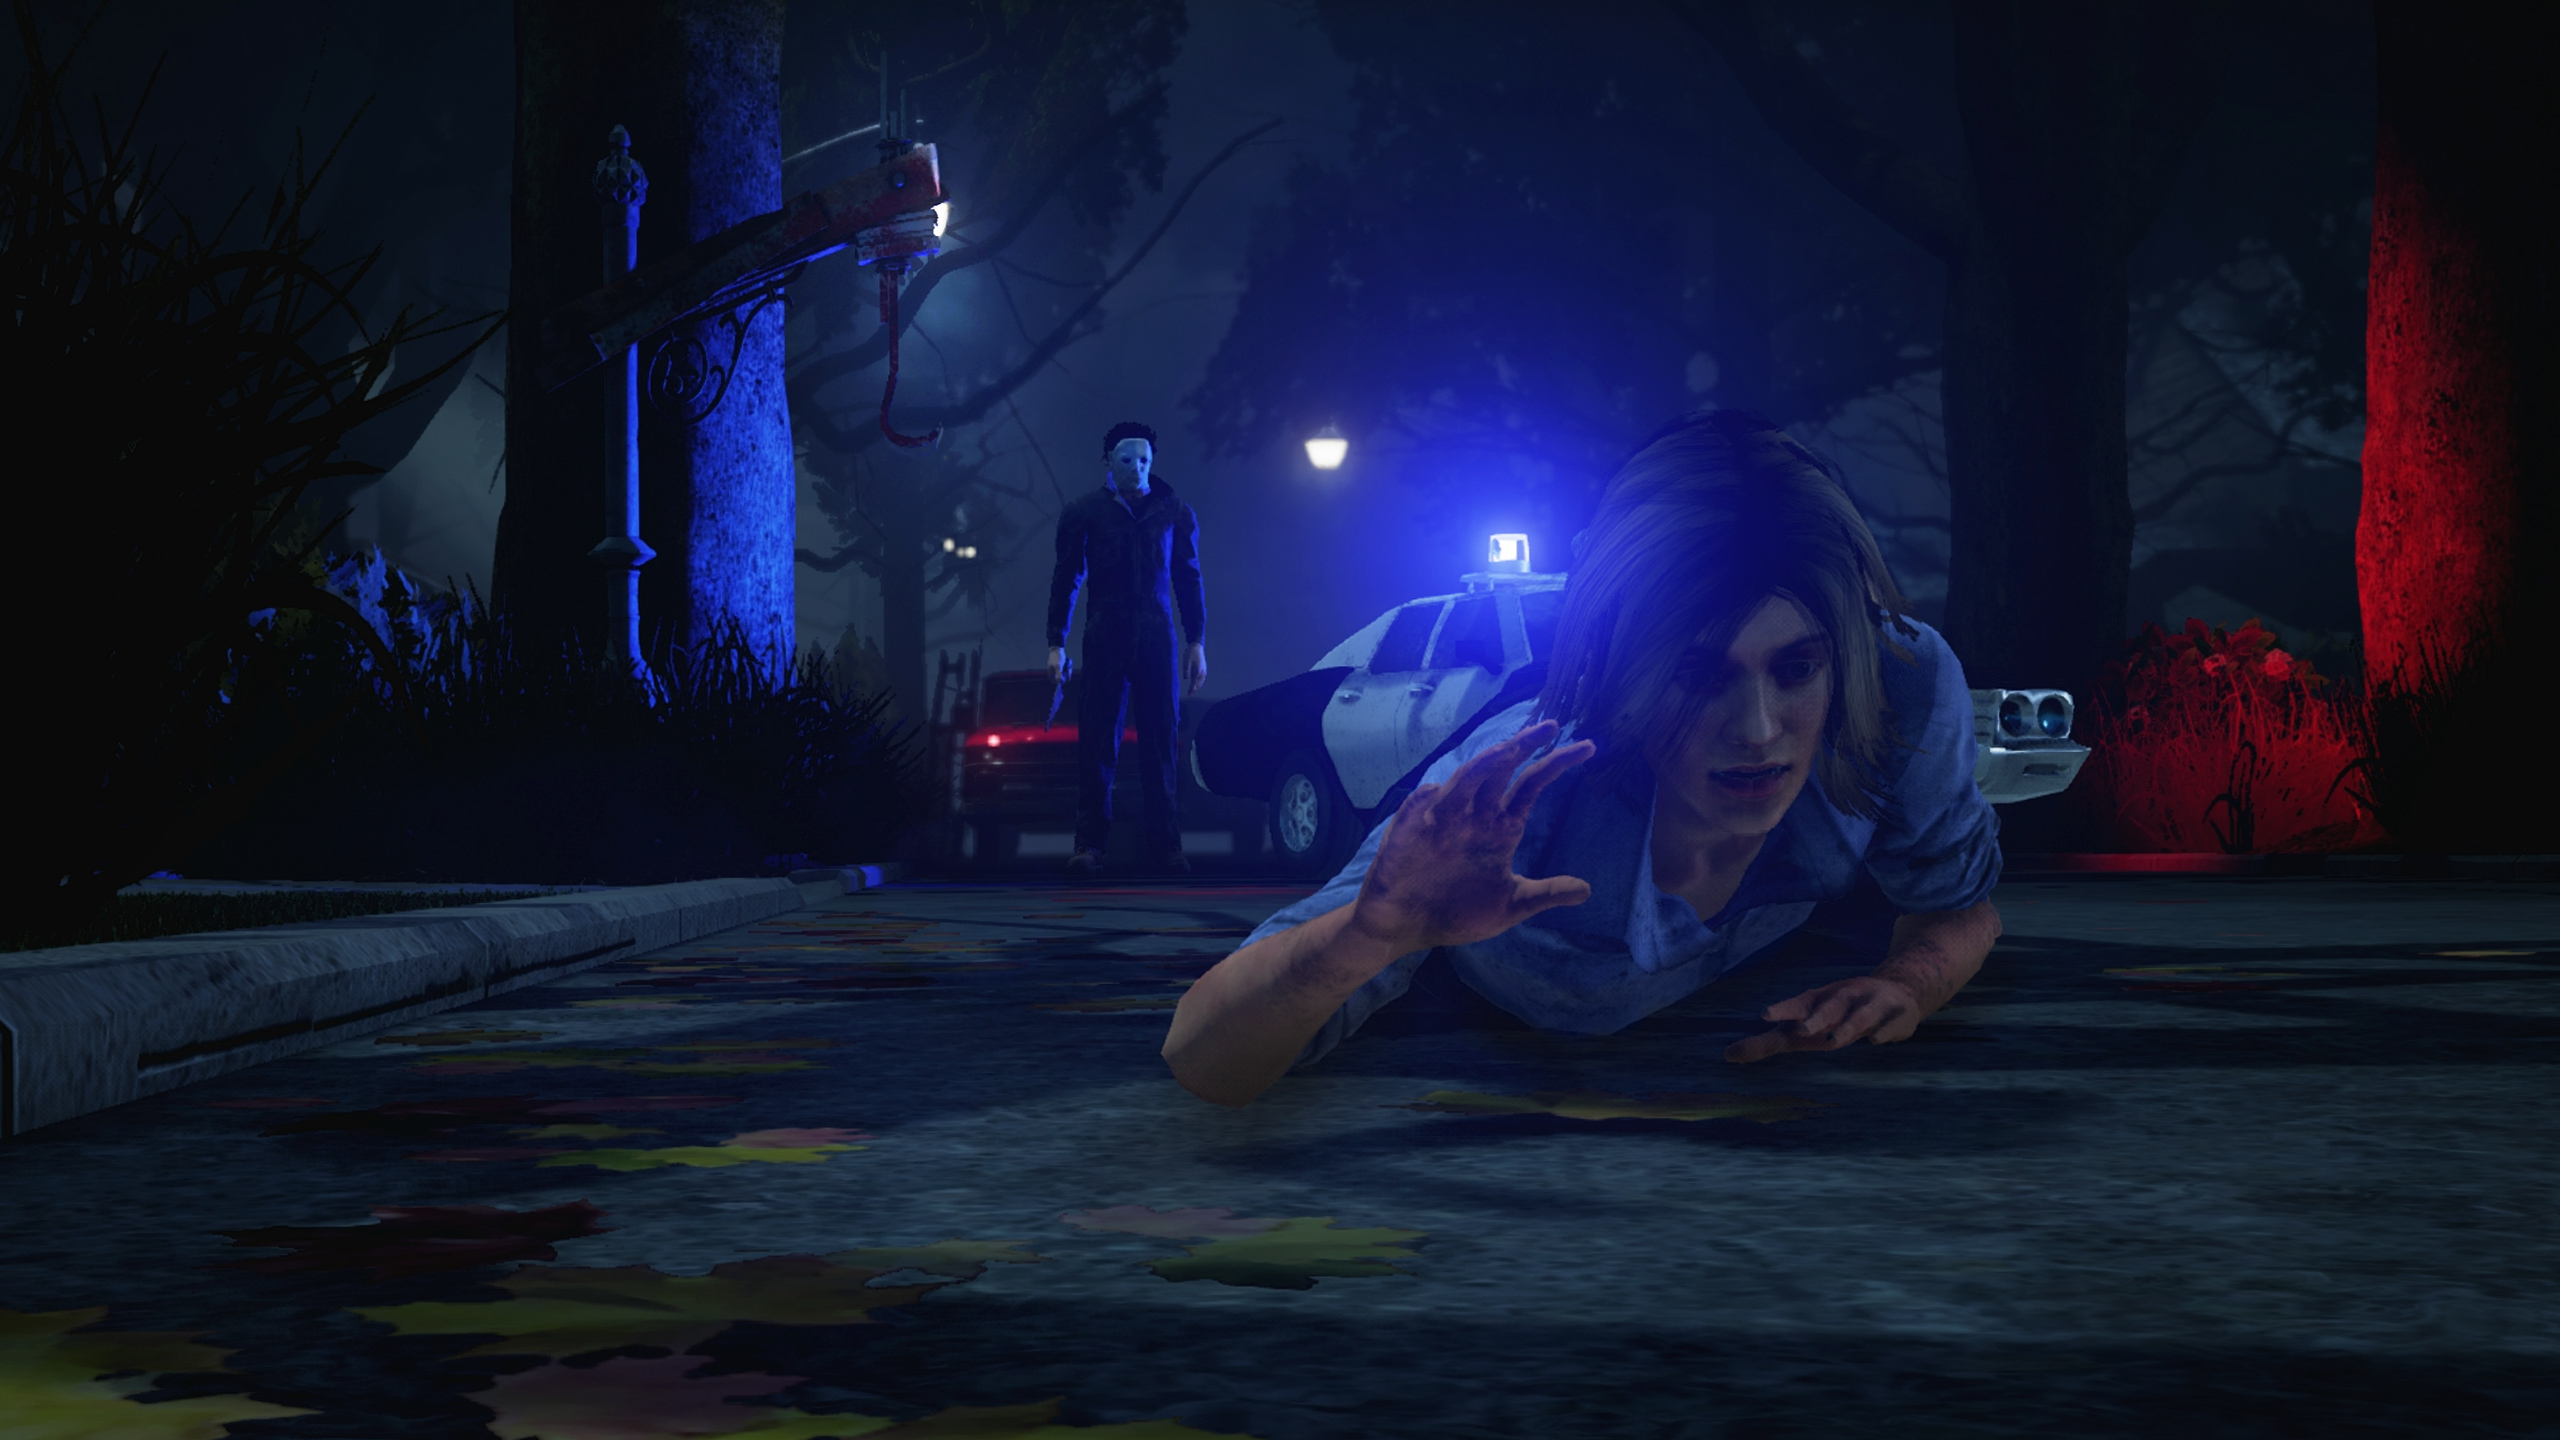 GOREPlay: 10 Horror Games That Shook This Decade